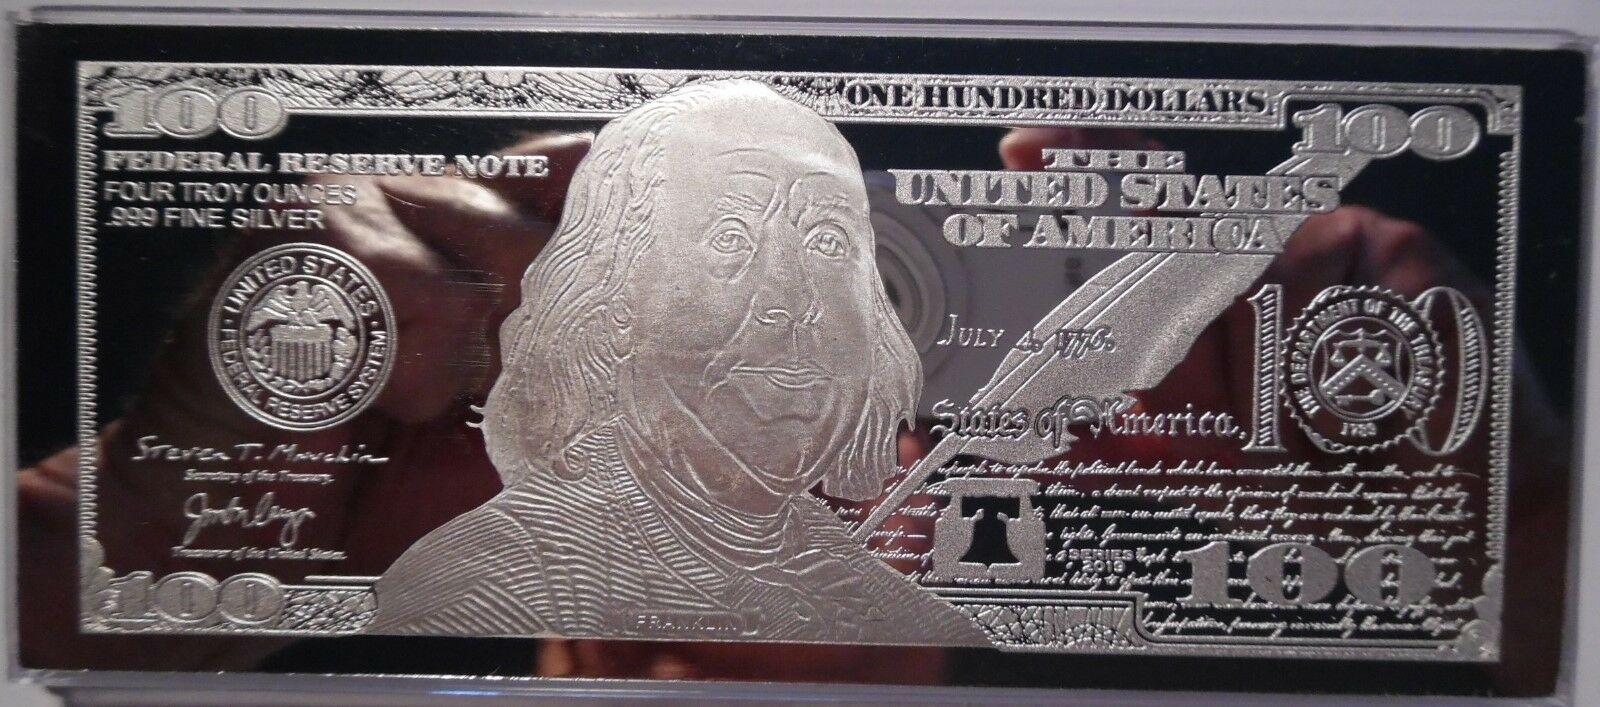 DISCOUNTED 2019 FRANKLIN $100 4 oz .999 CURRENCY SILVER BAR + COA ~ IMPERFECTION